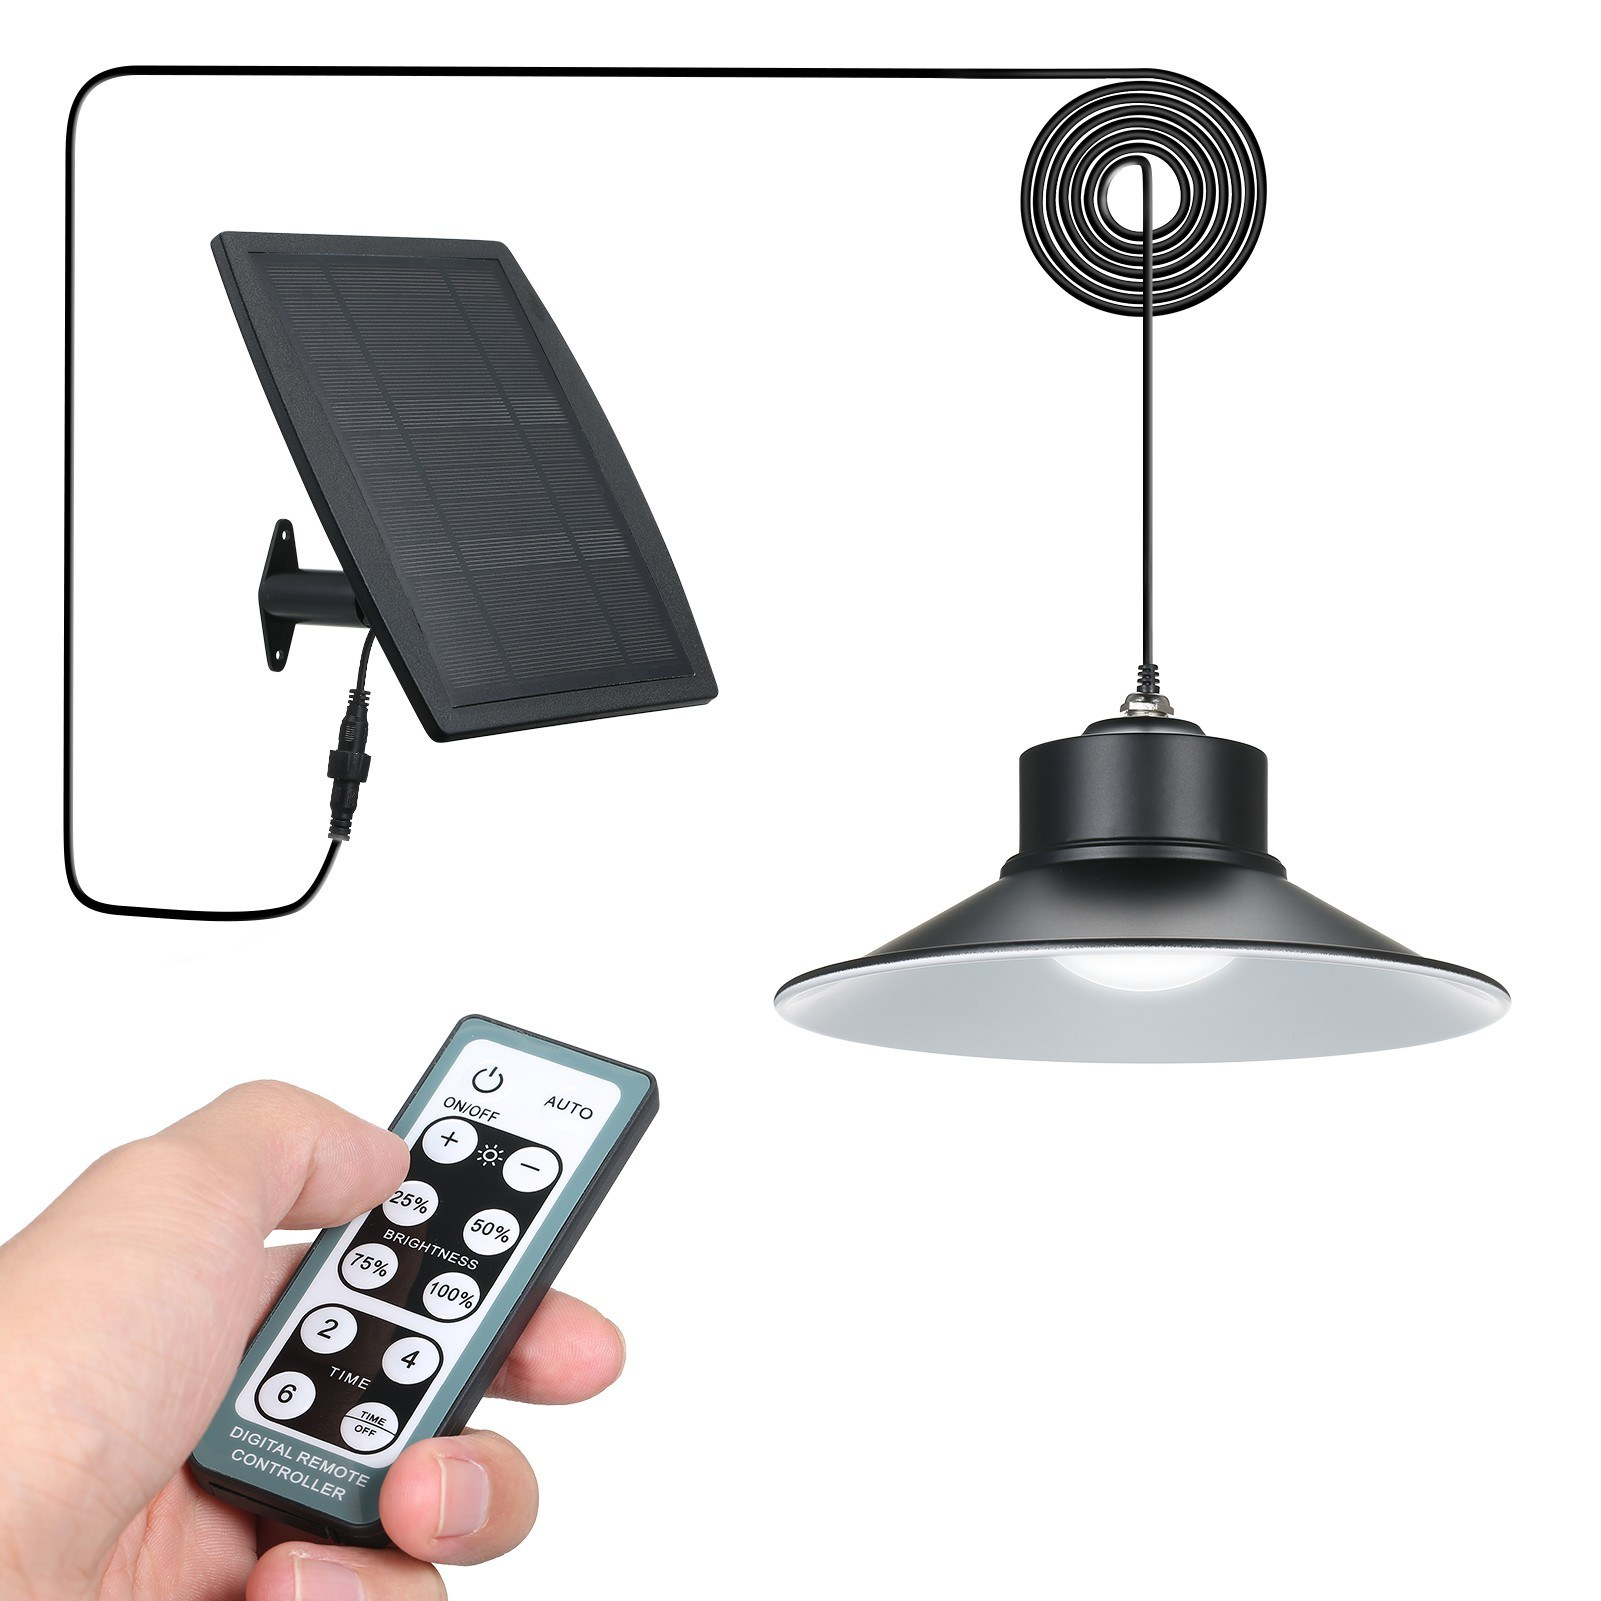 Tomtop - 62% OFF Solar Powered Ceiling Light LEDs Shed Lights, Free Shipping $31.99